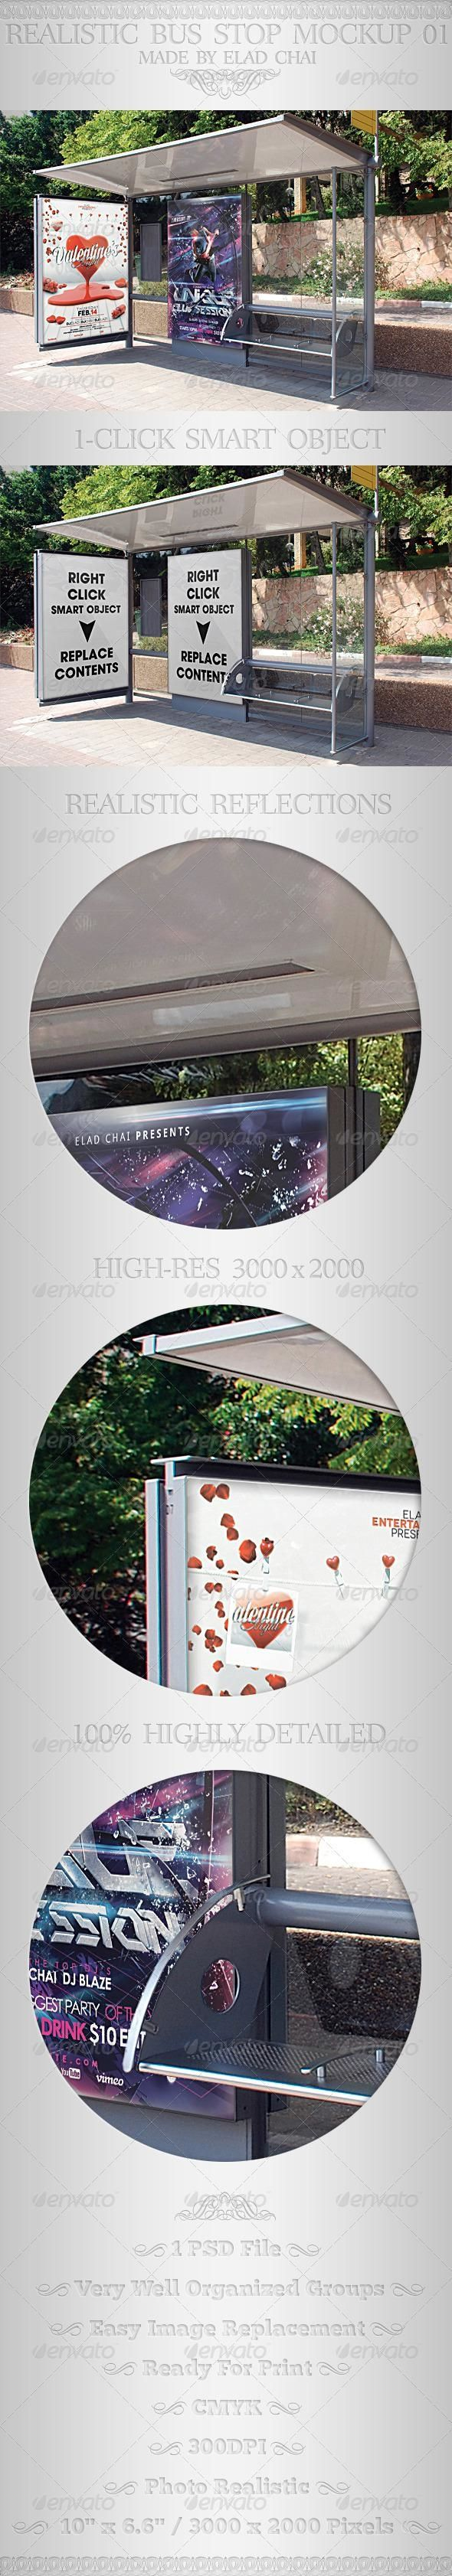 Realistic Bus Stop Flyer Poster Mockup 01 for $8  #mockup #psd #template #Signage #GraphicDesign #design #GraphicRiver #designresources #BestDesignResources